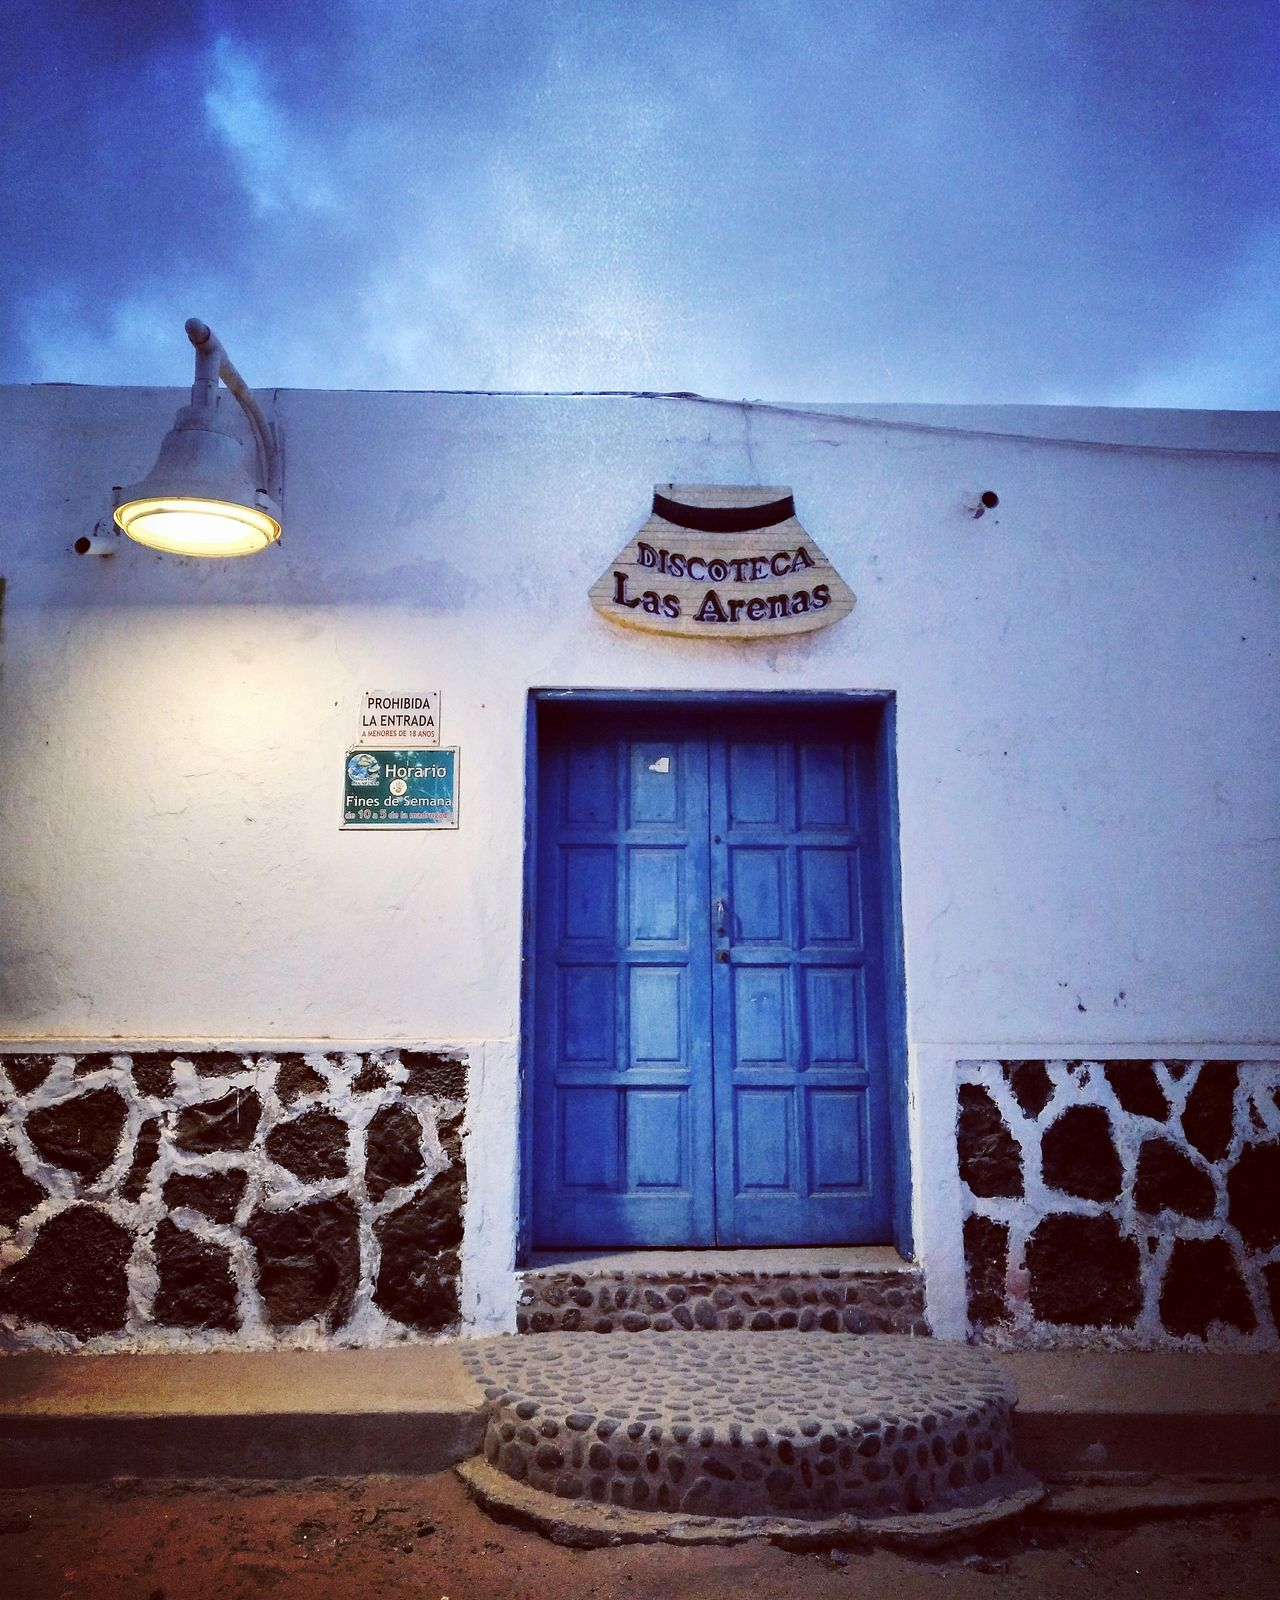 Camping La Graciosa Mai 2017🏜🌋 Door Blue Blue Hour Building Lamp Light Sky Disco Discotheque Discothek Club Clubbing Disco Time Disco Fever Party Party Time Techno Night Evening SPAIN OVER 18 Building Exterior Architecture Moments La Graciosa Place Of Heart The Street Photographer - 2017 EyeEm Awards